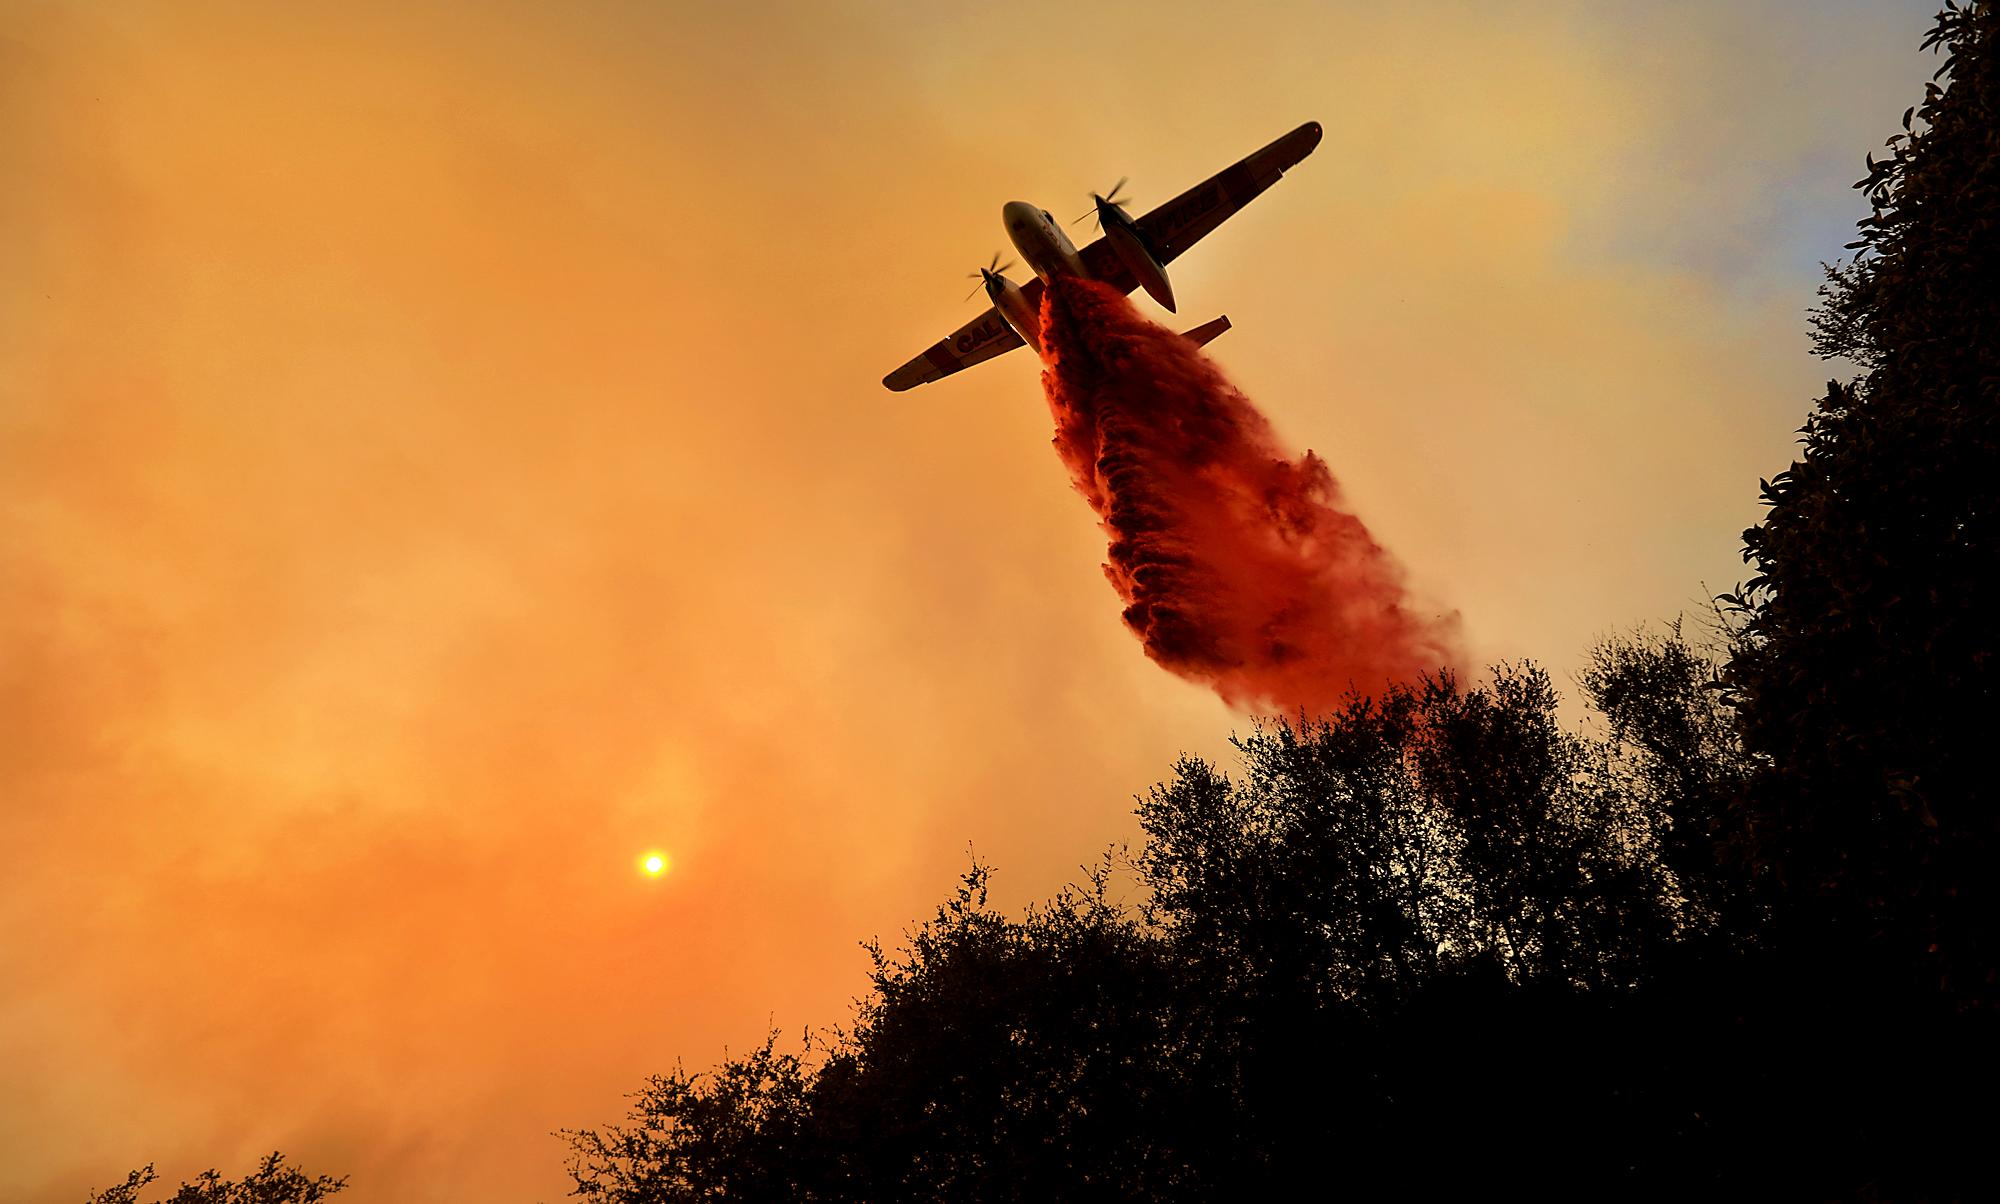 A Cal Fire air taker makes a drop on a wildfire as the pilot protects structures on the Hawkeye Ranch above Geyserville, Thursday Oct. 12, 2017. Thousands of firefighters are battling the blazes and additional manpower and equipment was pouring in from across the country and as far as Australia and Canada. (Kent Porter/The Press Democrat via AP)